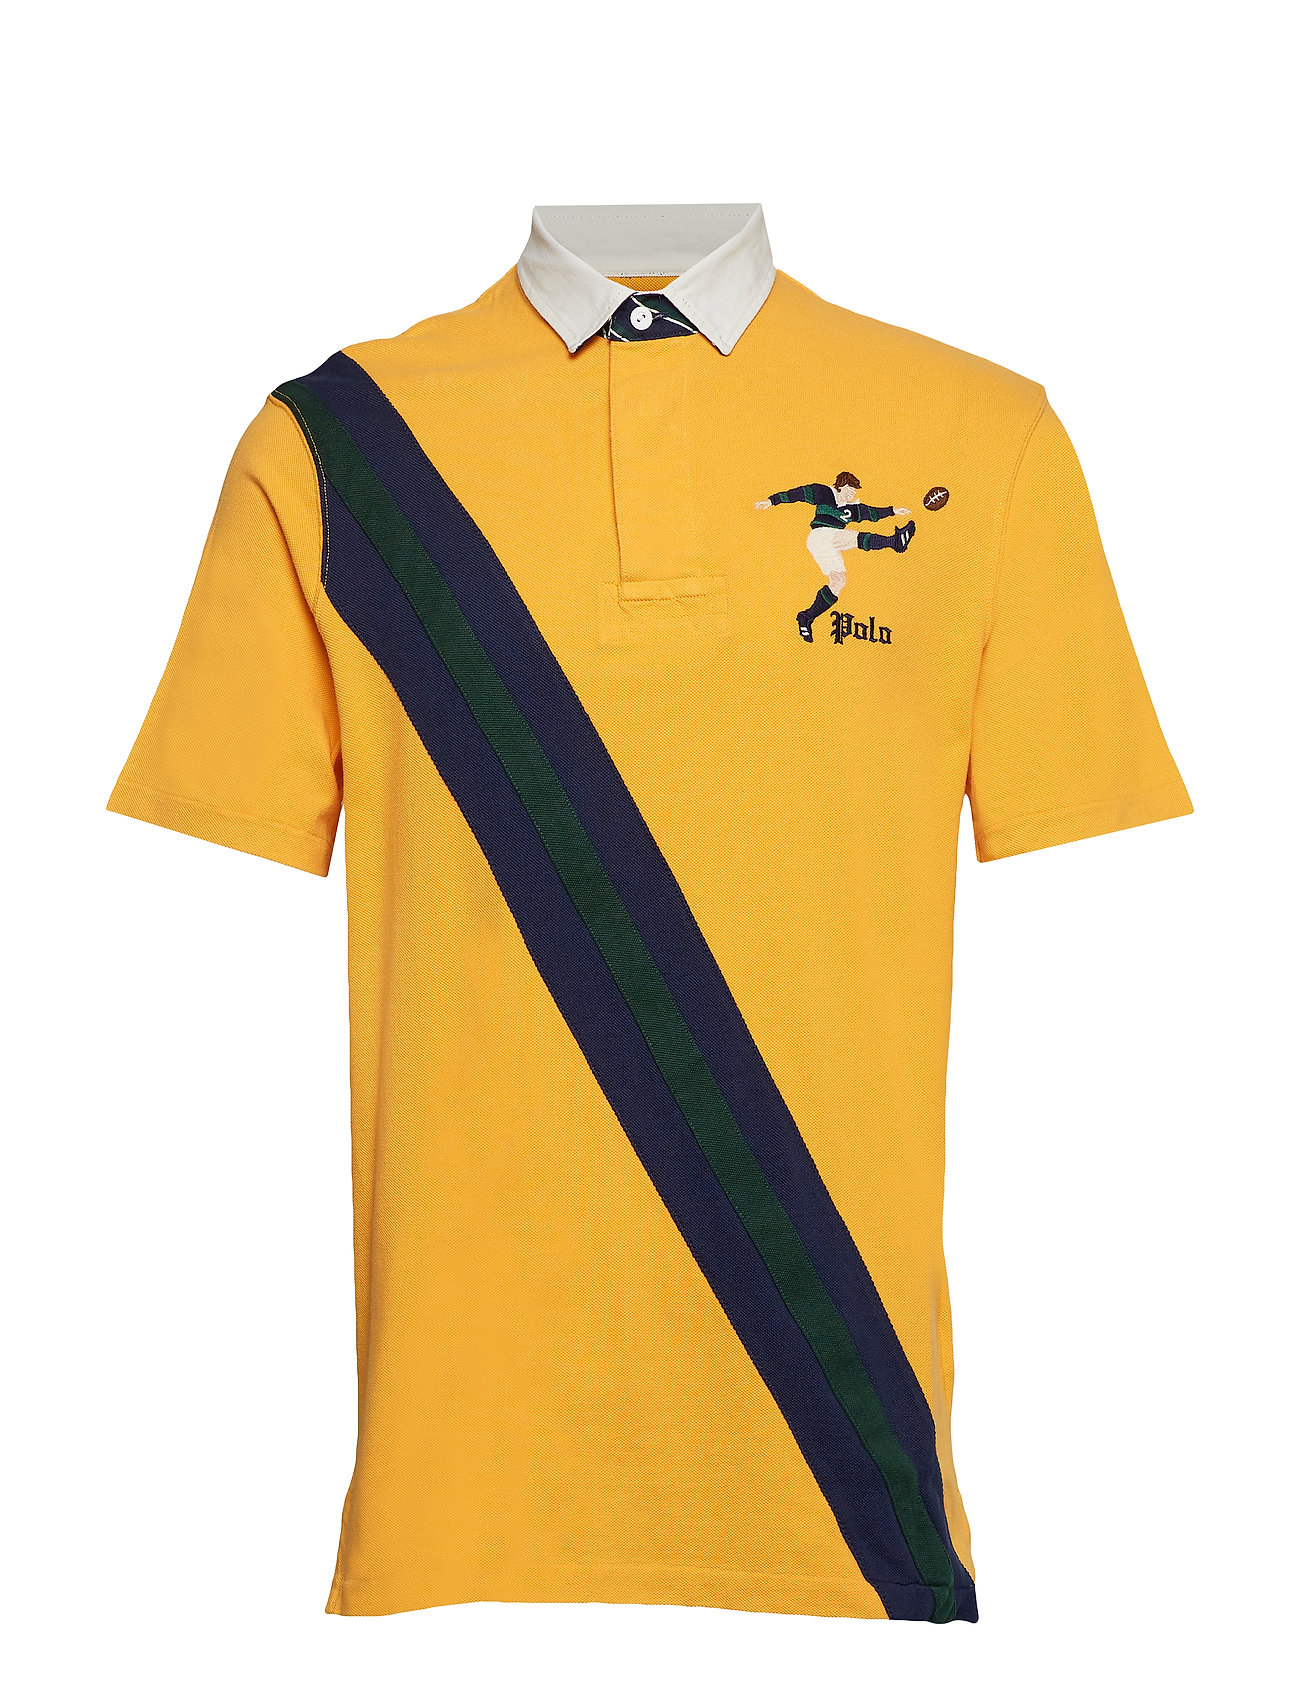 Polo Ralph Lauren Classic Fit Mesh Rugby Shirt - GOLD BUGLE MULTI